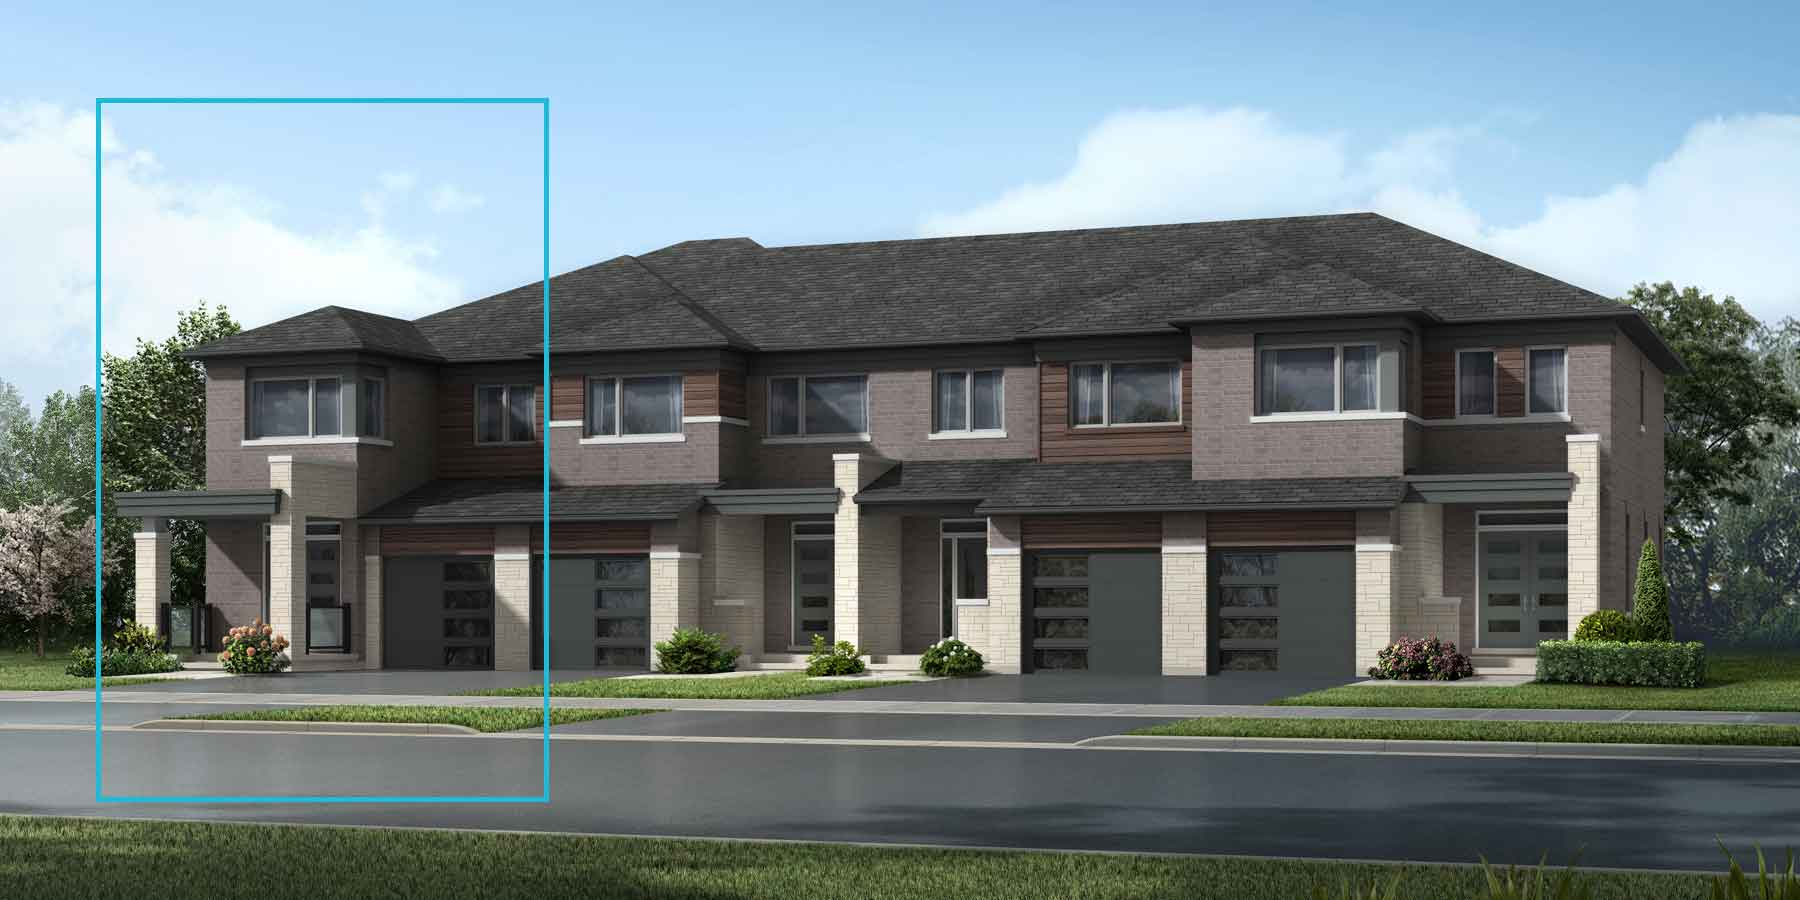 The Trussler End Plan elevationtransitional_southestates_trusslerned at Wildflower Crossing in Kitchener Ontario by Mattamy Homes